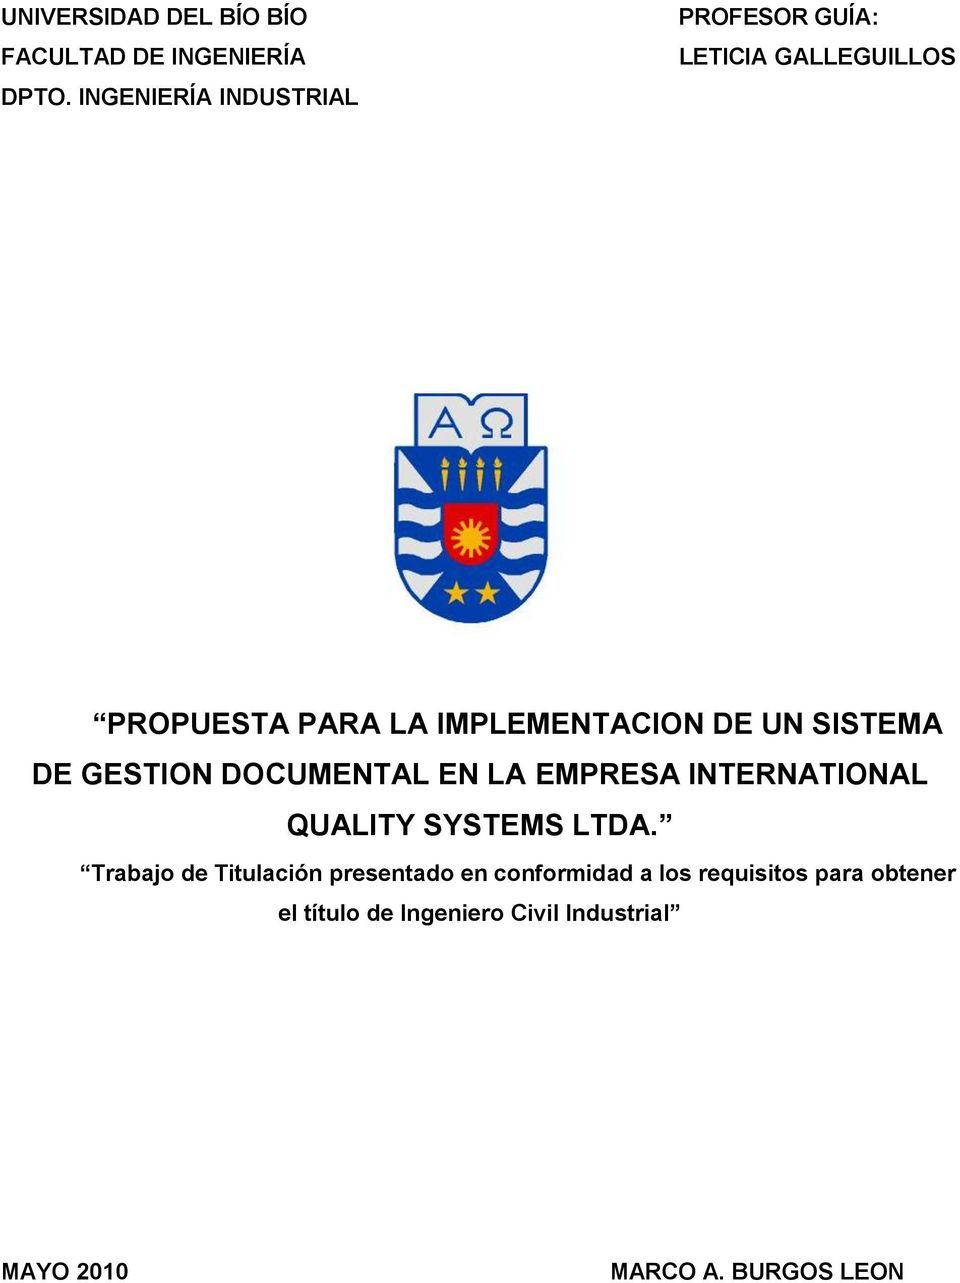 UN SISTEMA DE GESTION DOCUMENTAL EN LA EMPRESA INTERNATIONAL QUALITY SYSTEMS LTDA.